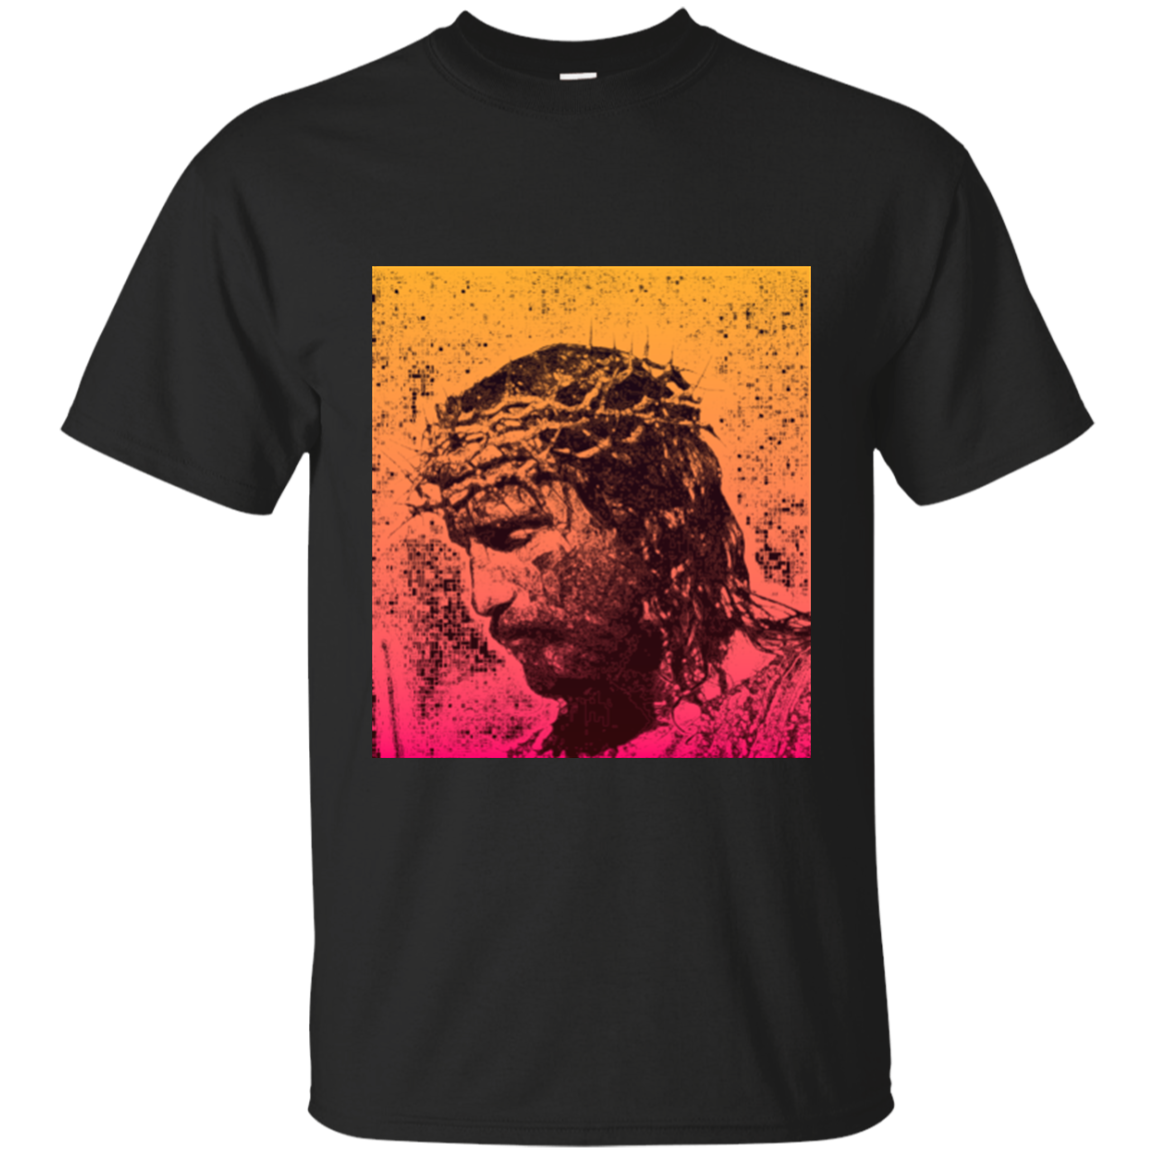 PASSION OF THE CHRIST  T-SHIRT